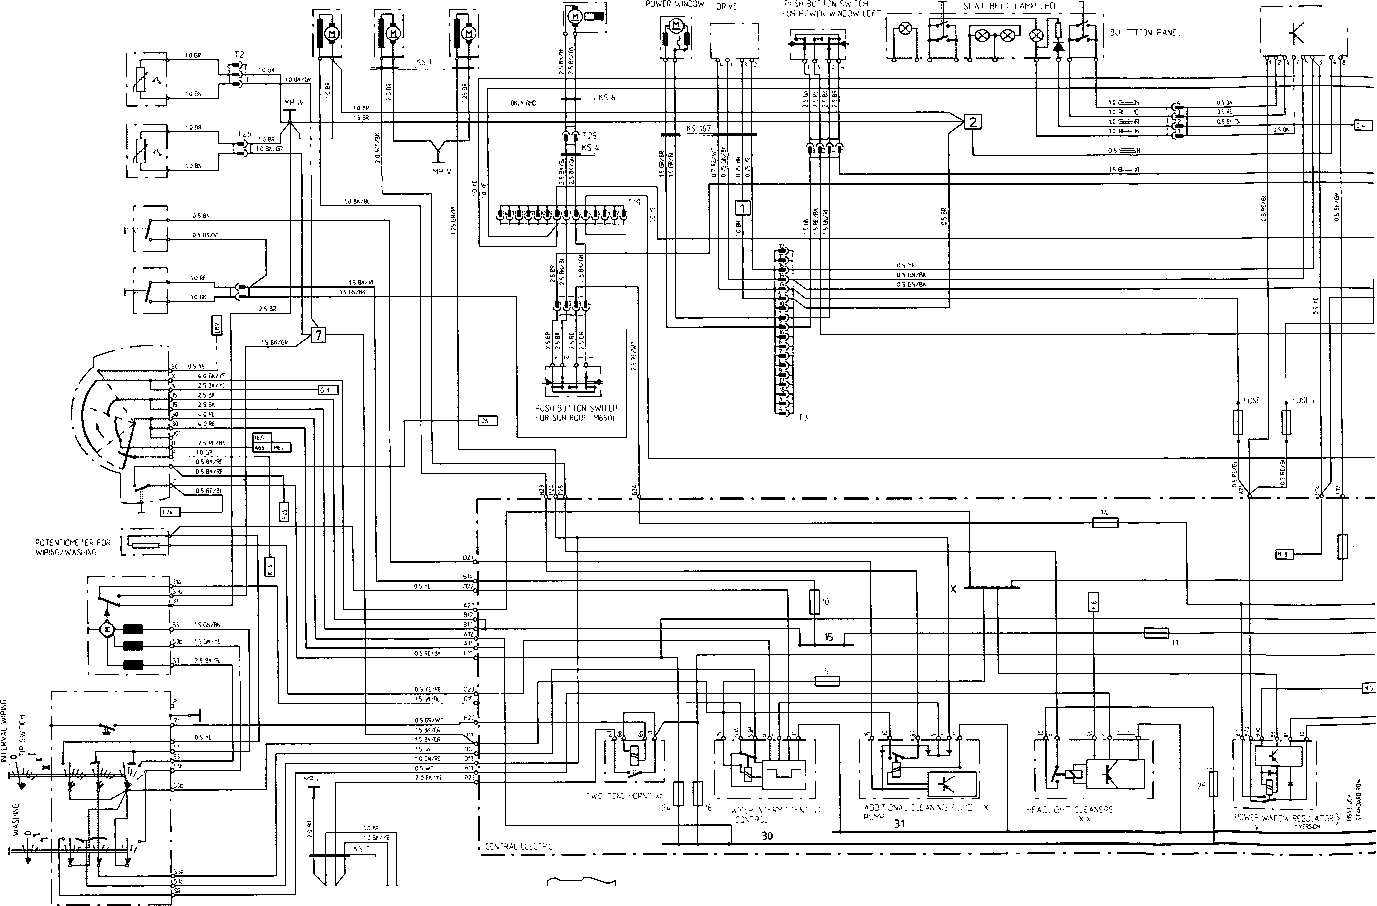 hight resolution of wiring diagram iype 928 s model 88 page